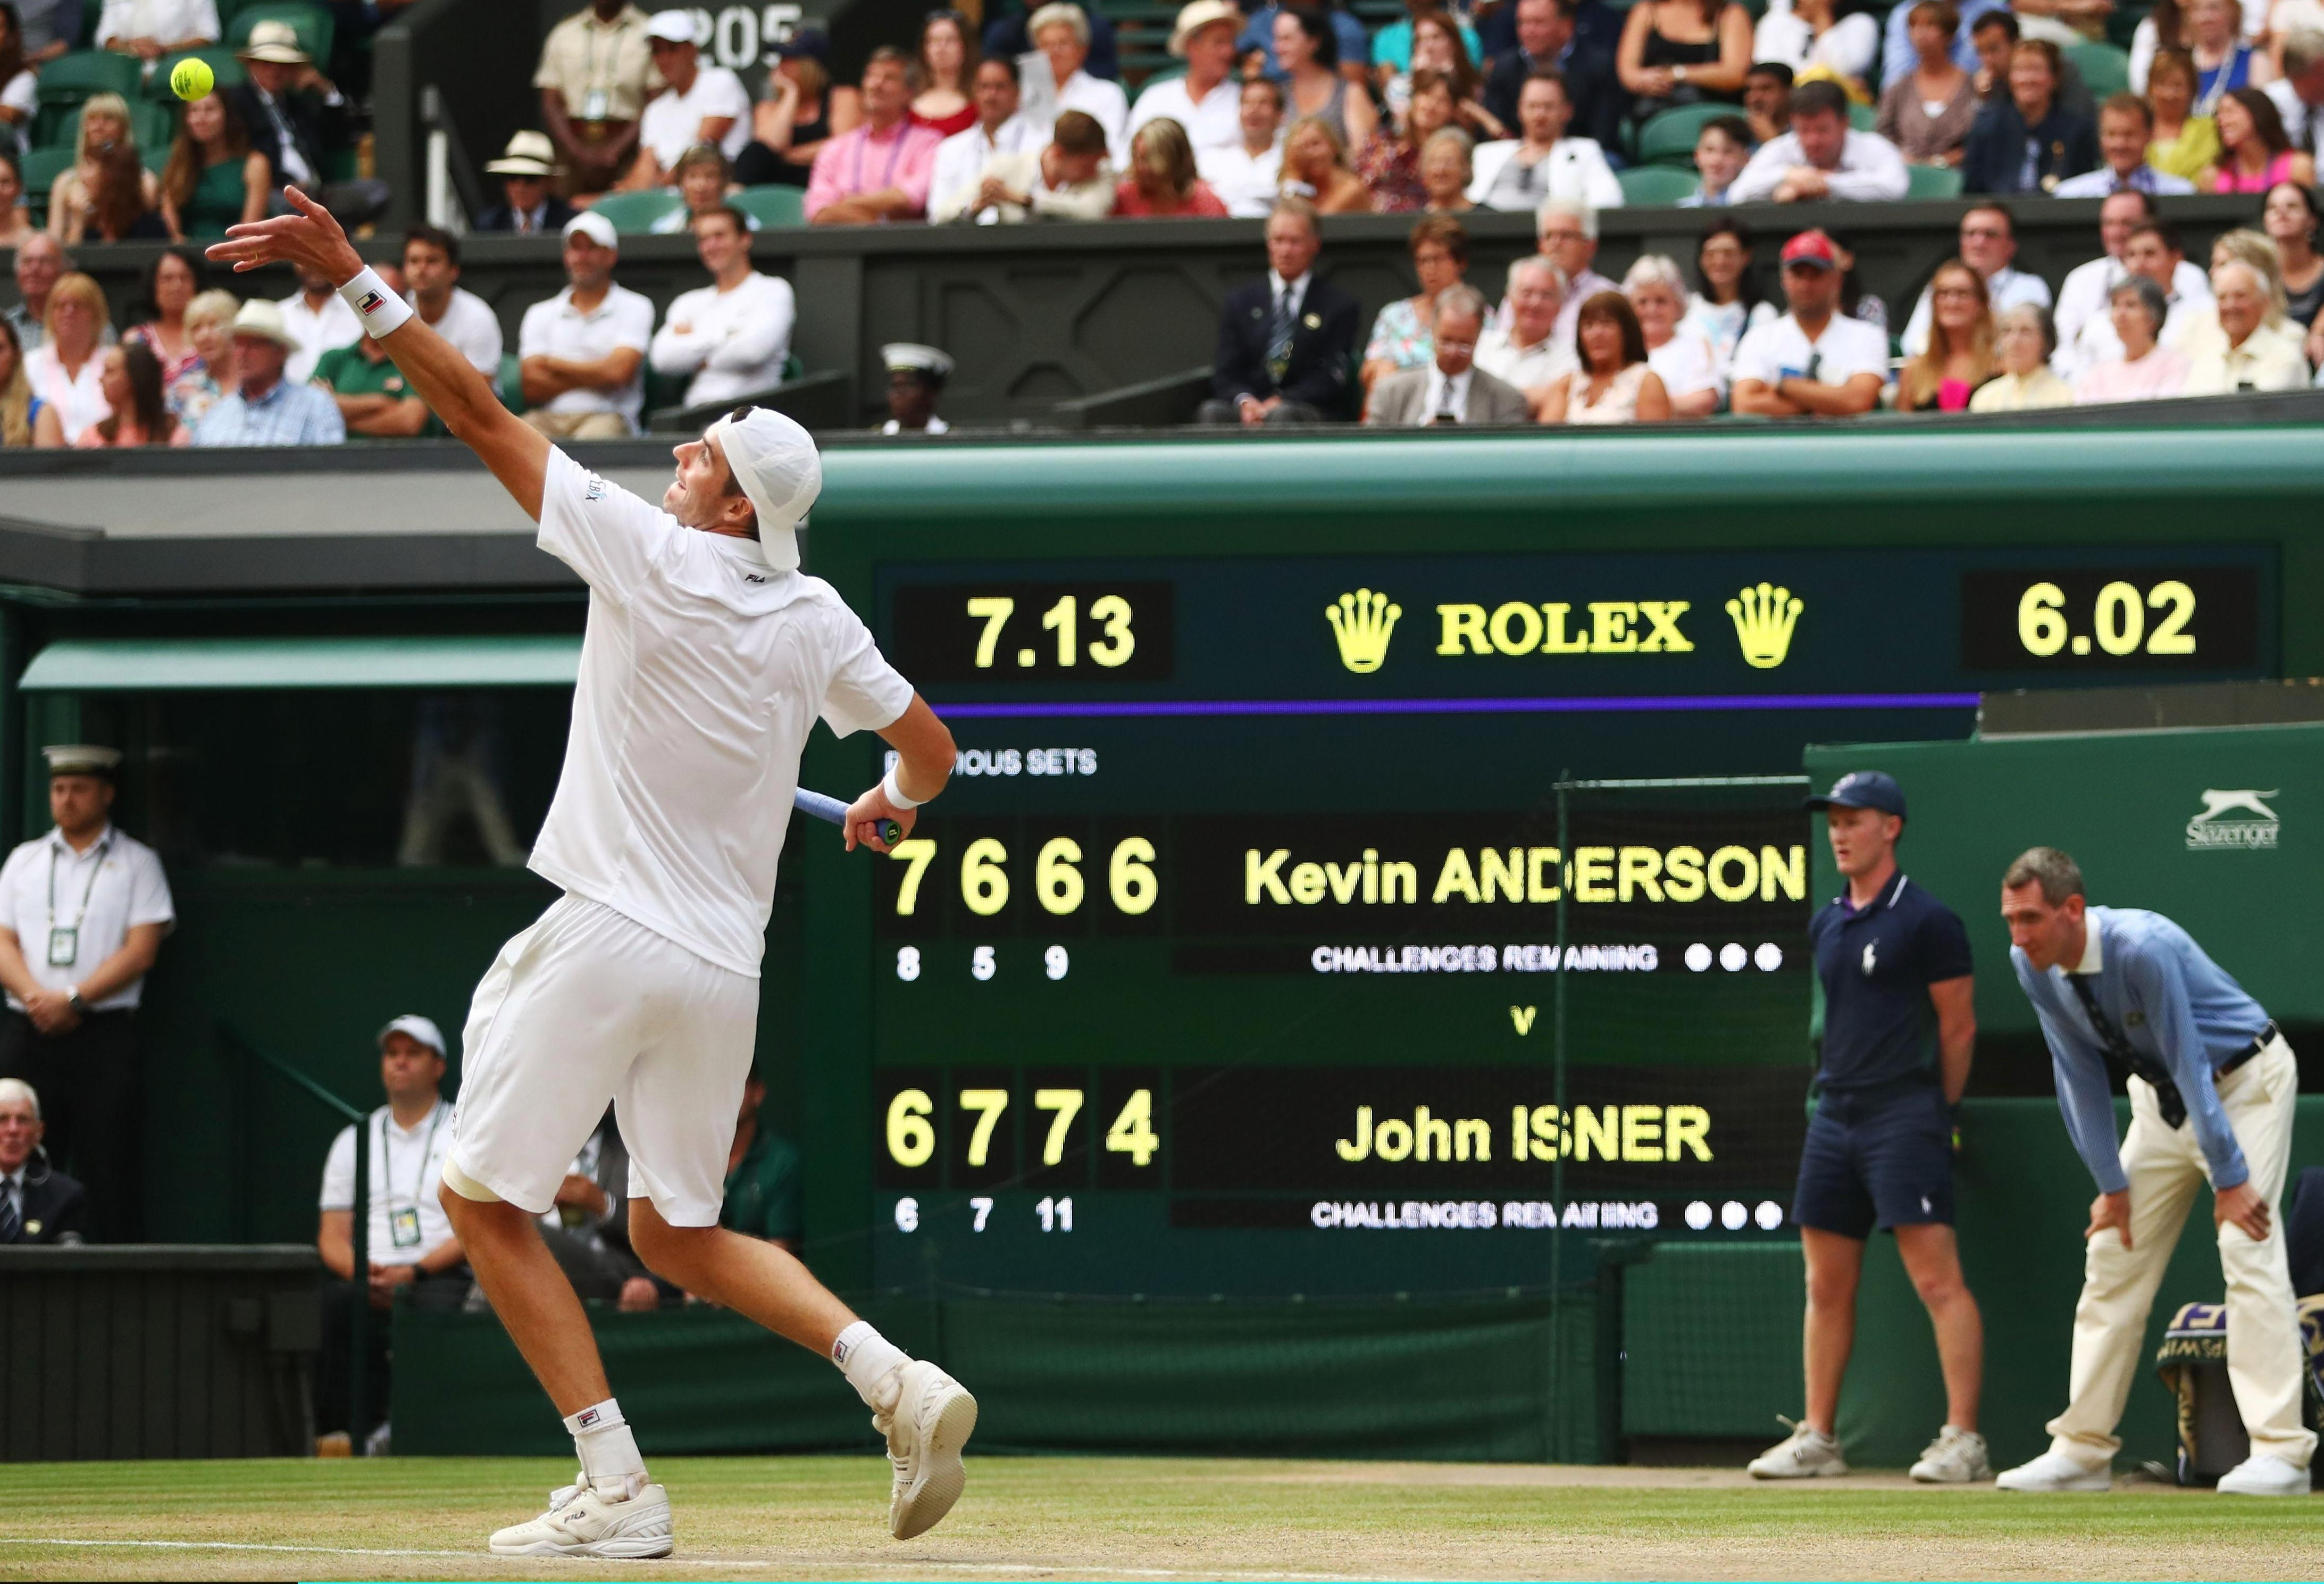 John Isner sends down another rocket as the 2018 Wimbledon semi-final passes the six-hour mark